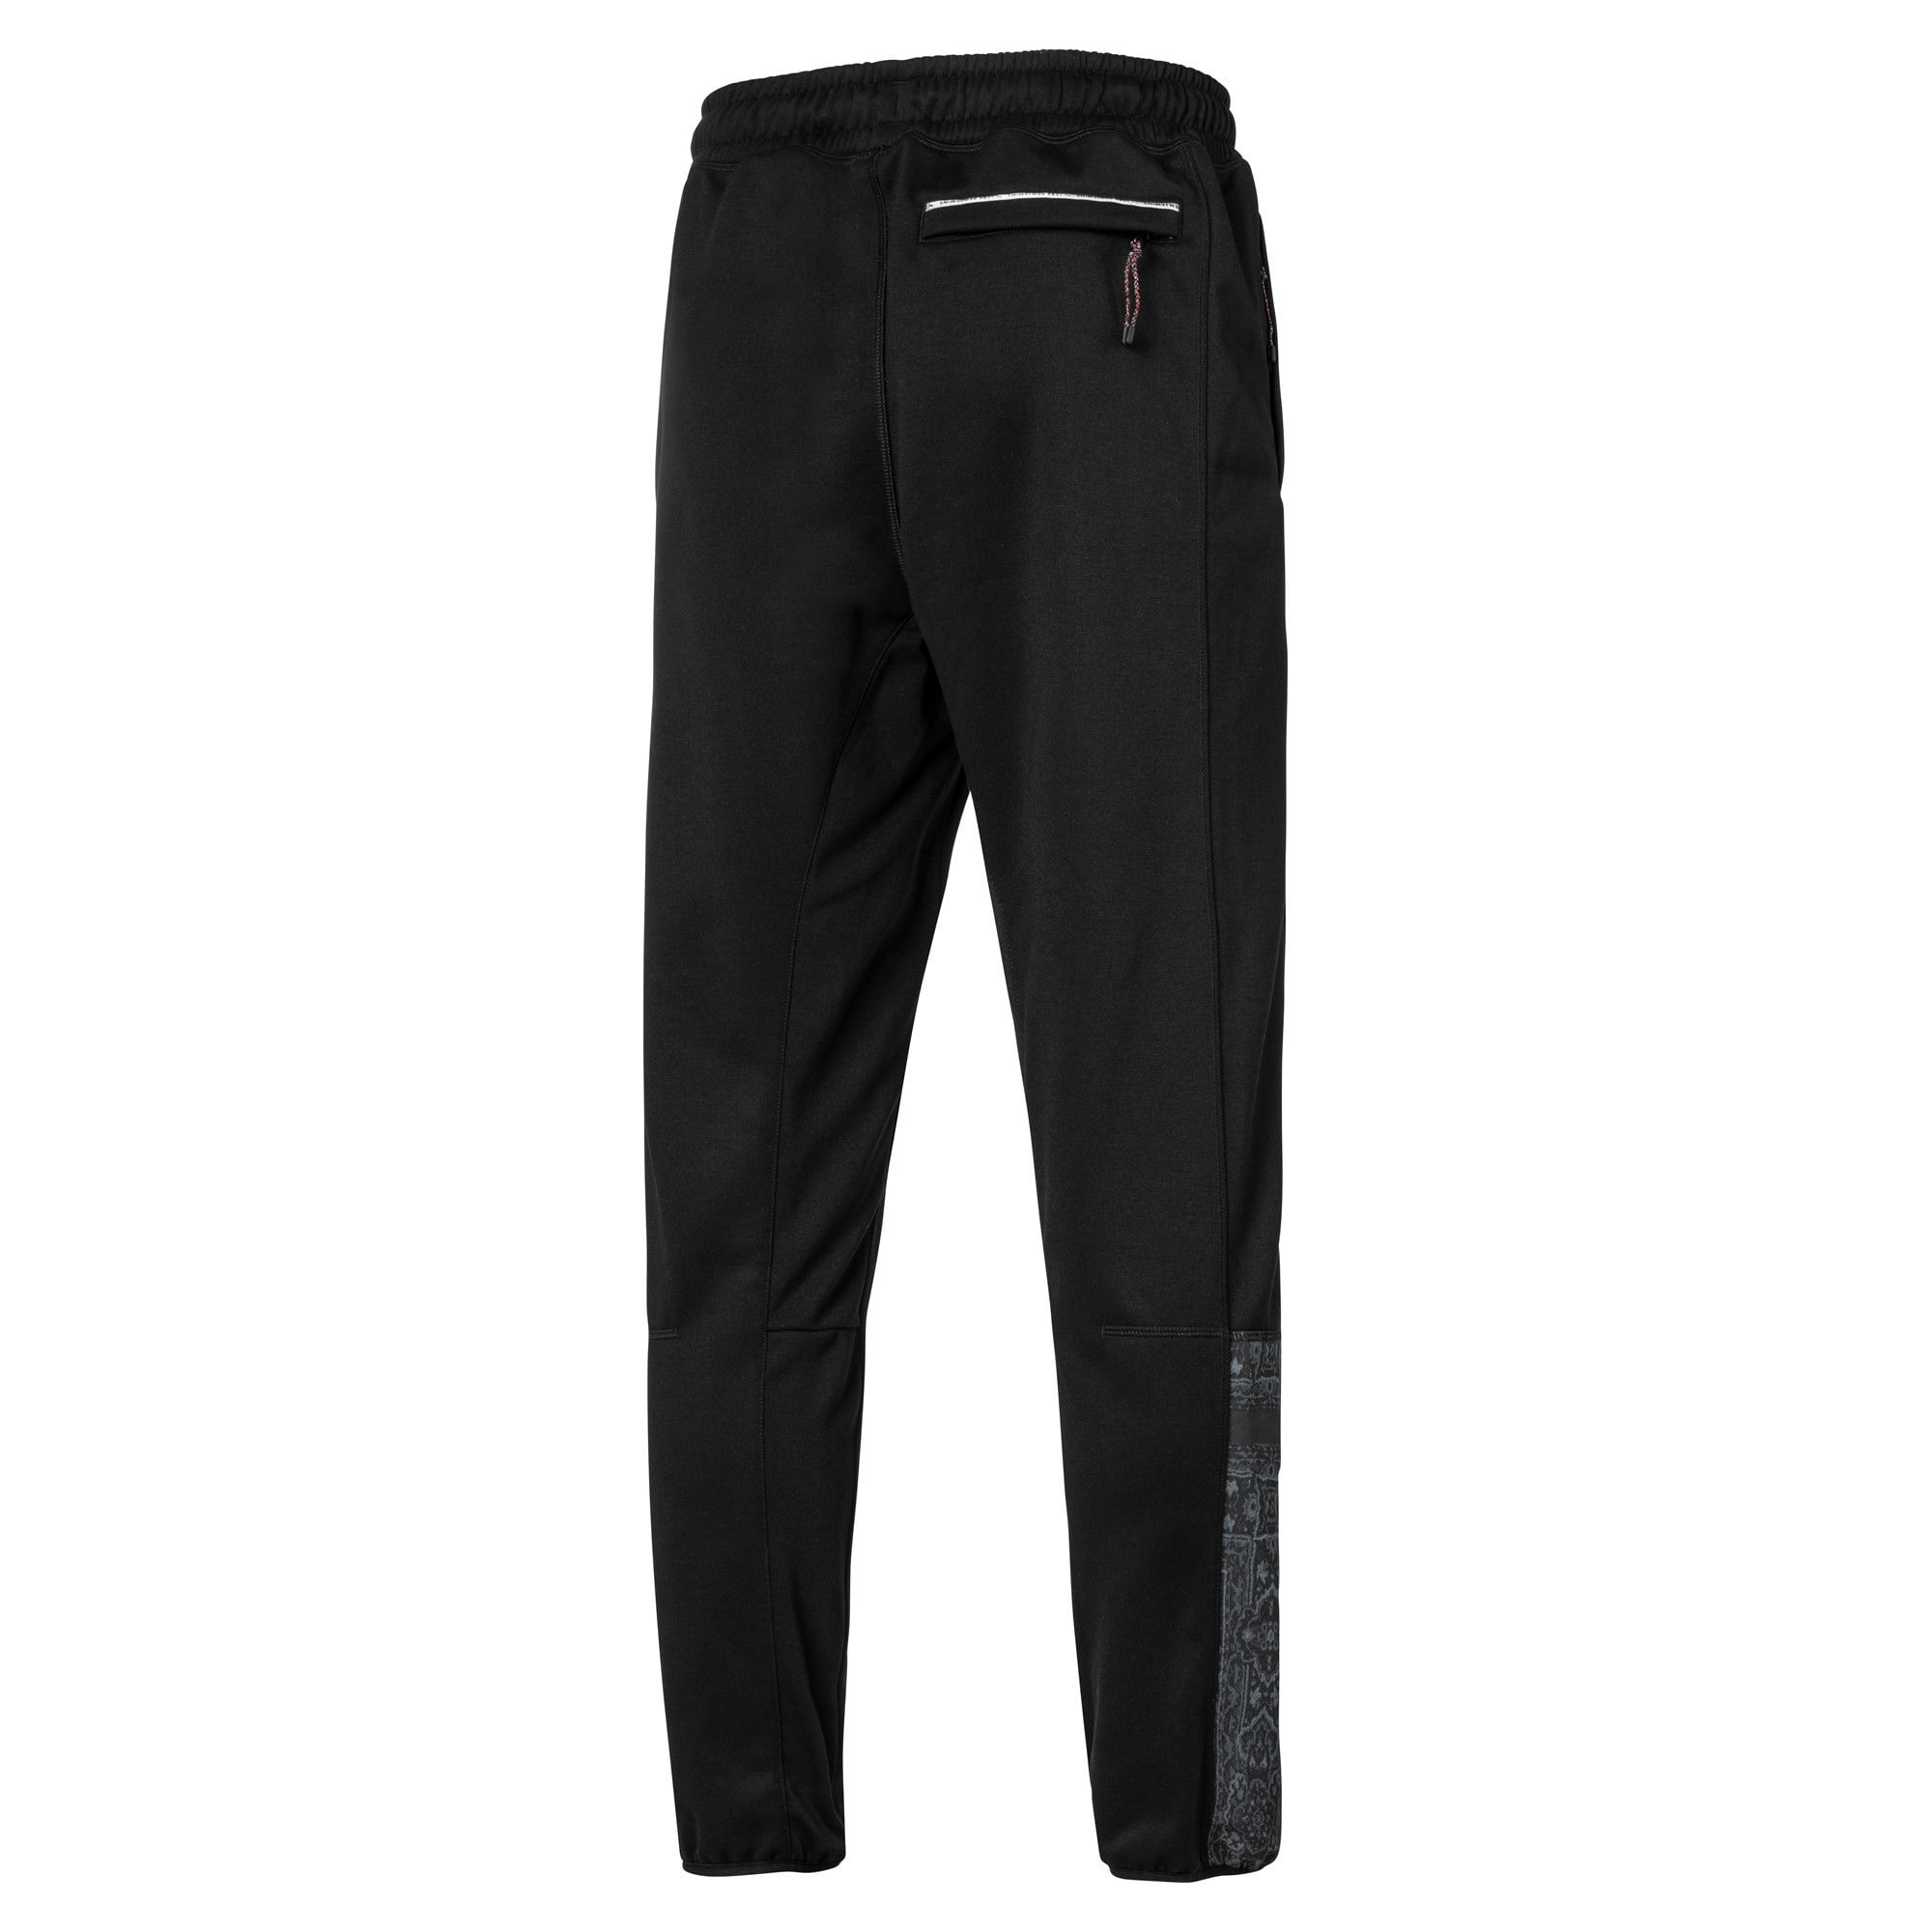 Thumbnail 5 of PUMA x LES BENJAMINS Men's Track Pants, Puma Black, medium